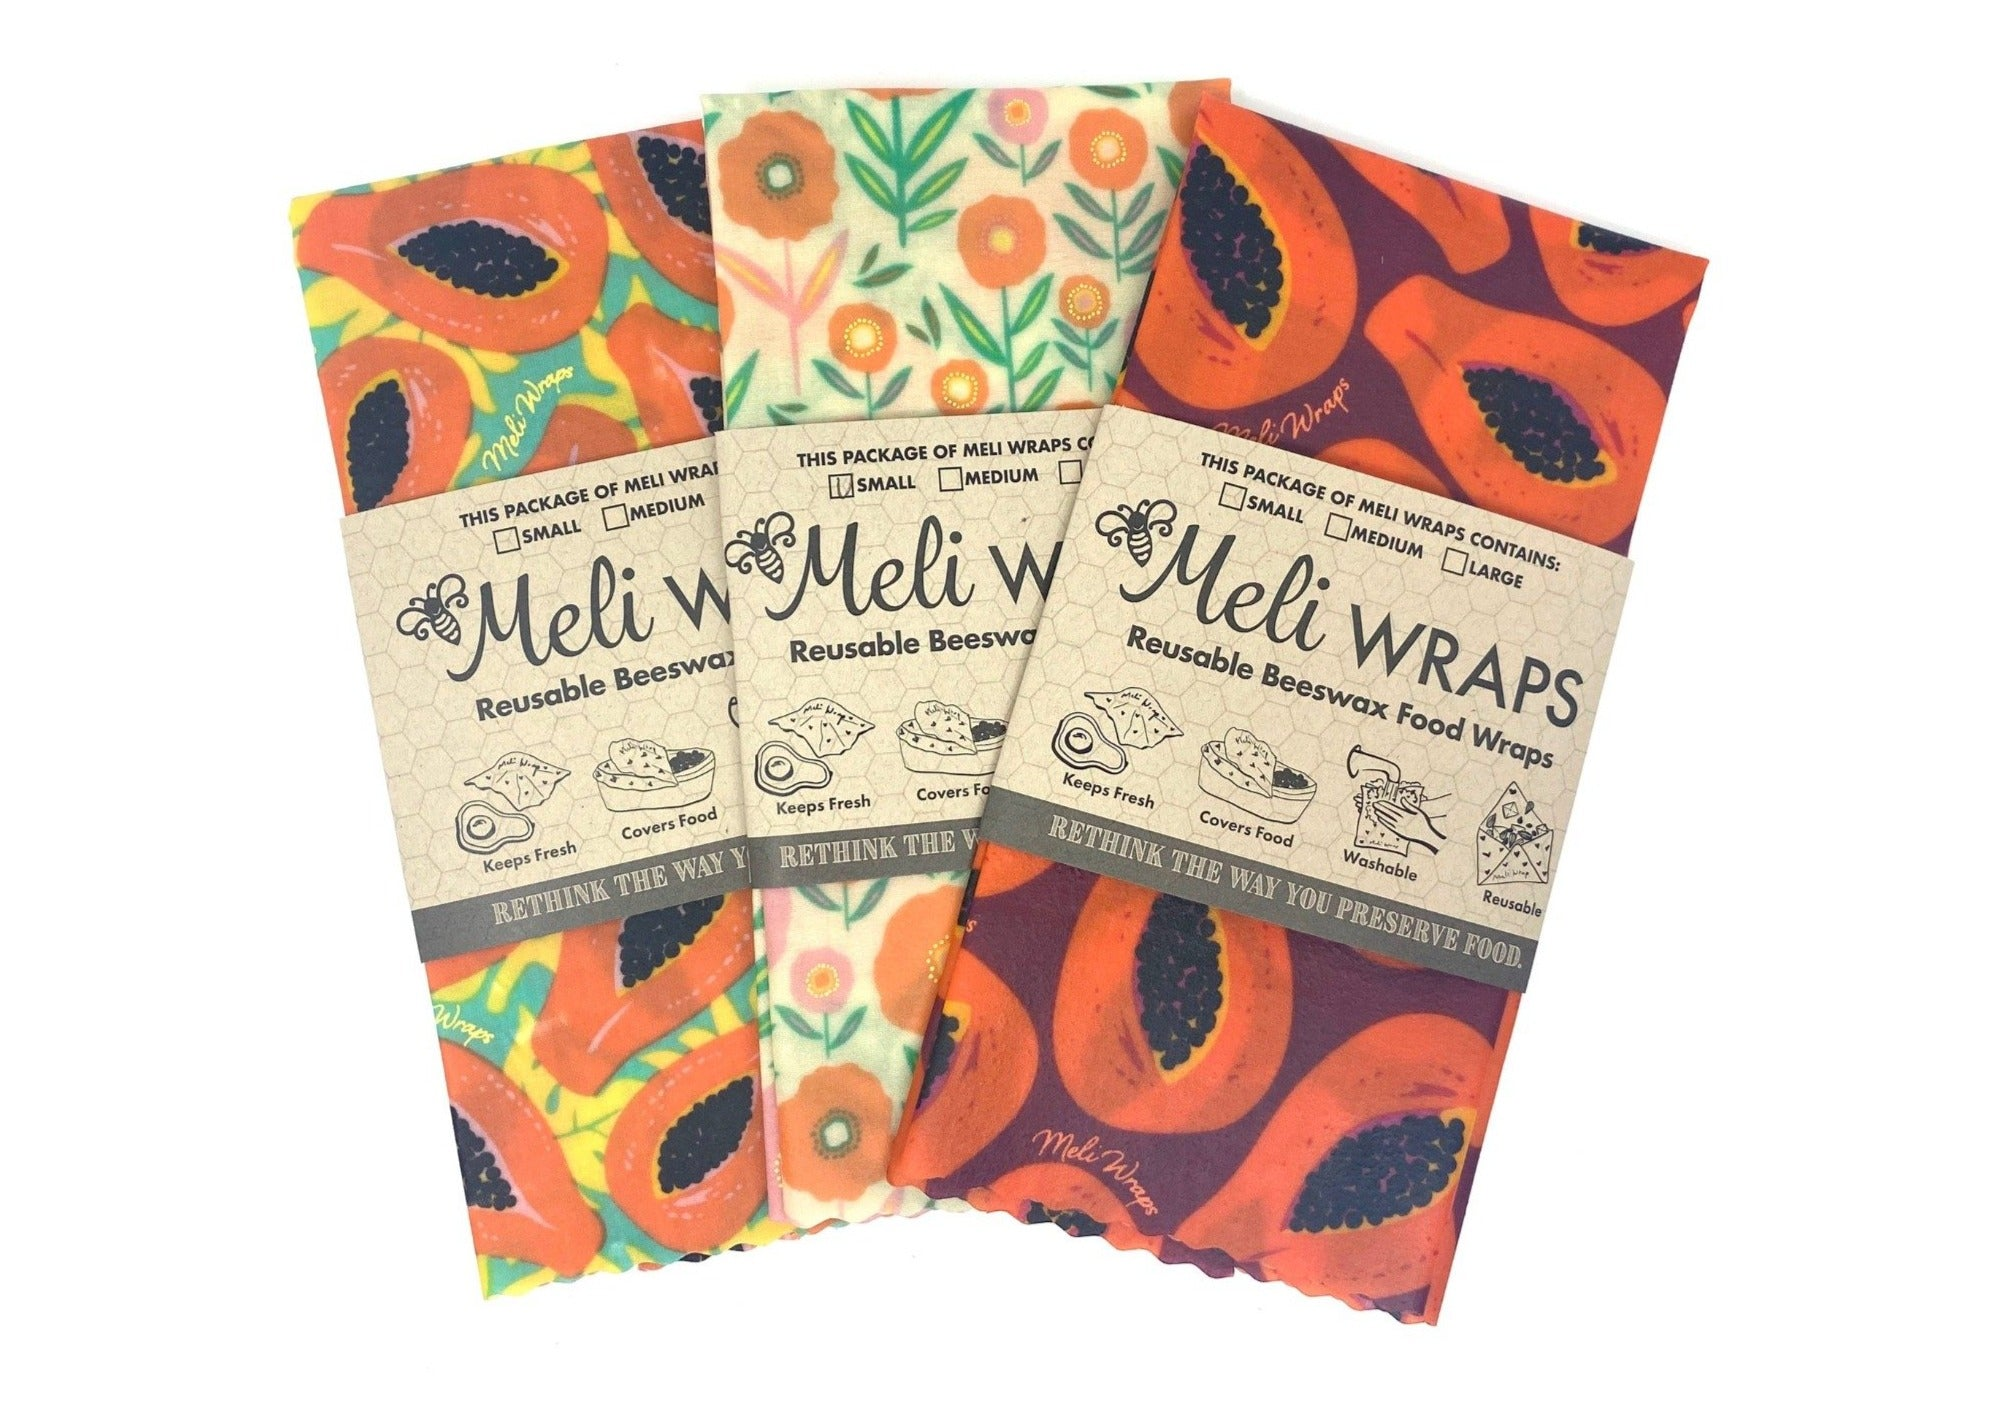 Meli Wraps Reusable Beeswax Wraps - Blooming Papaya Variety Pack